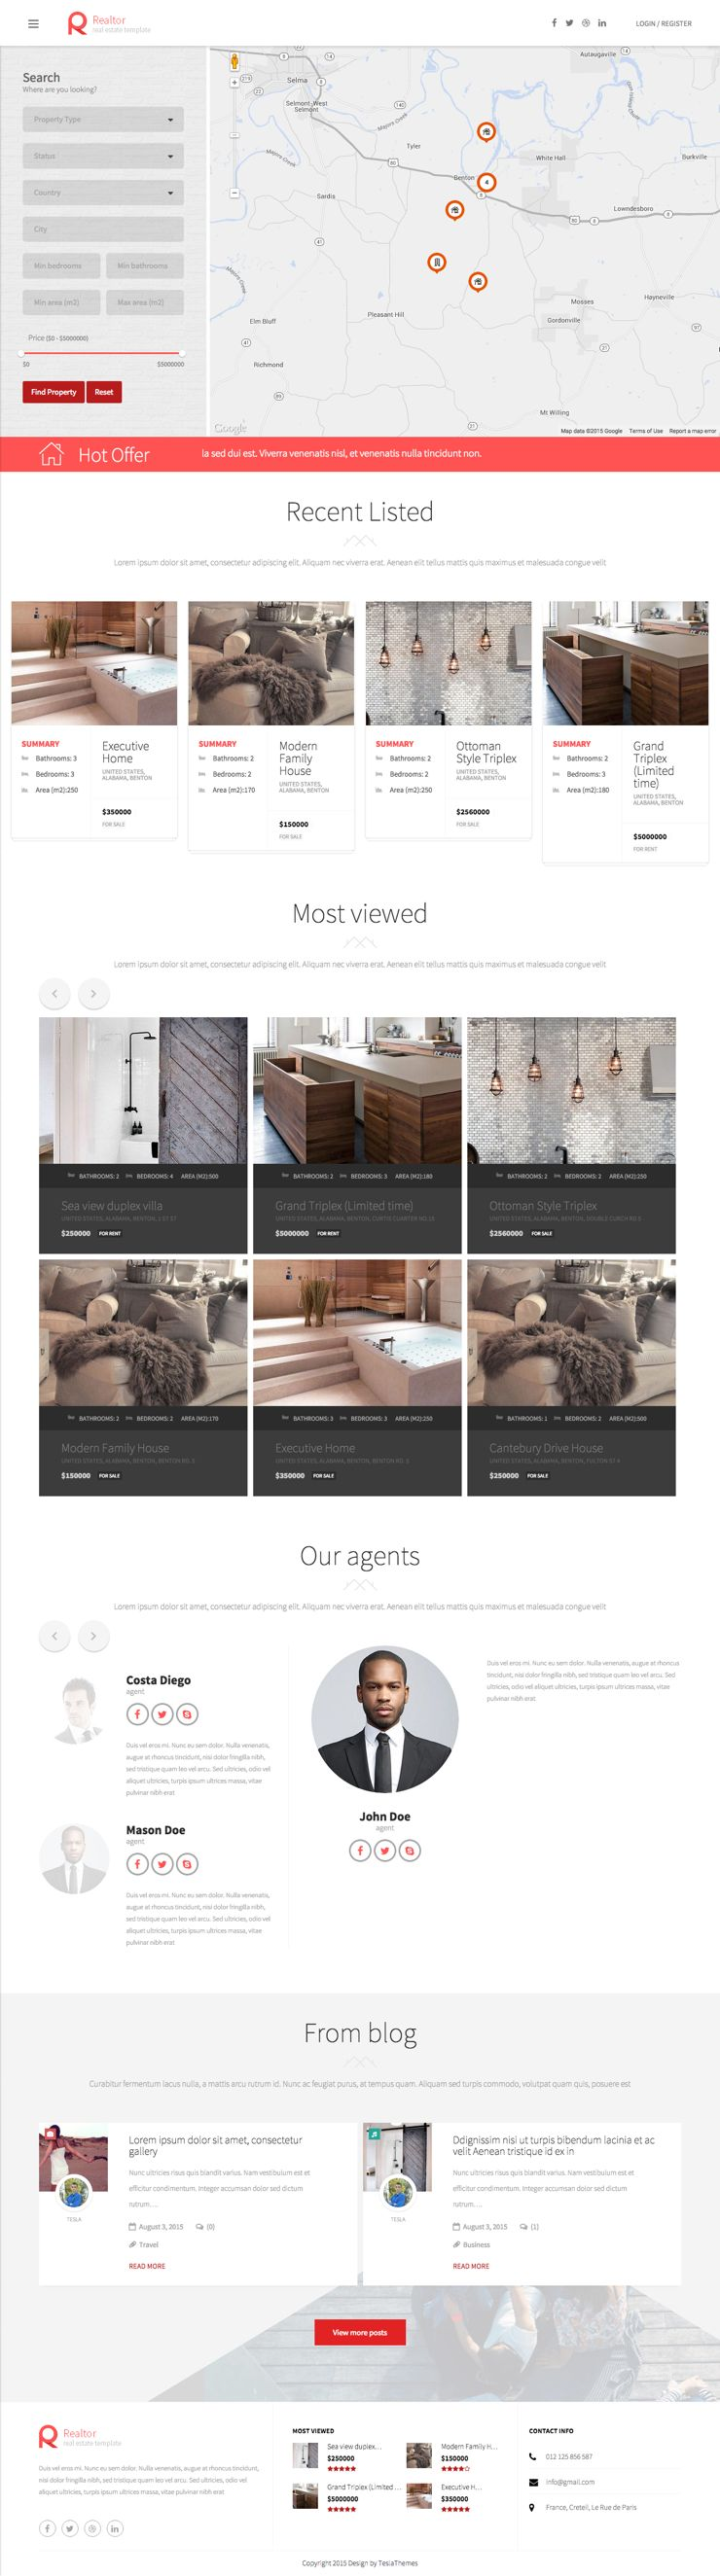 Realtor Real Estate Agents WordPress Theme